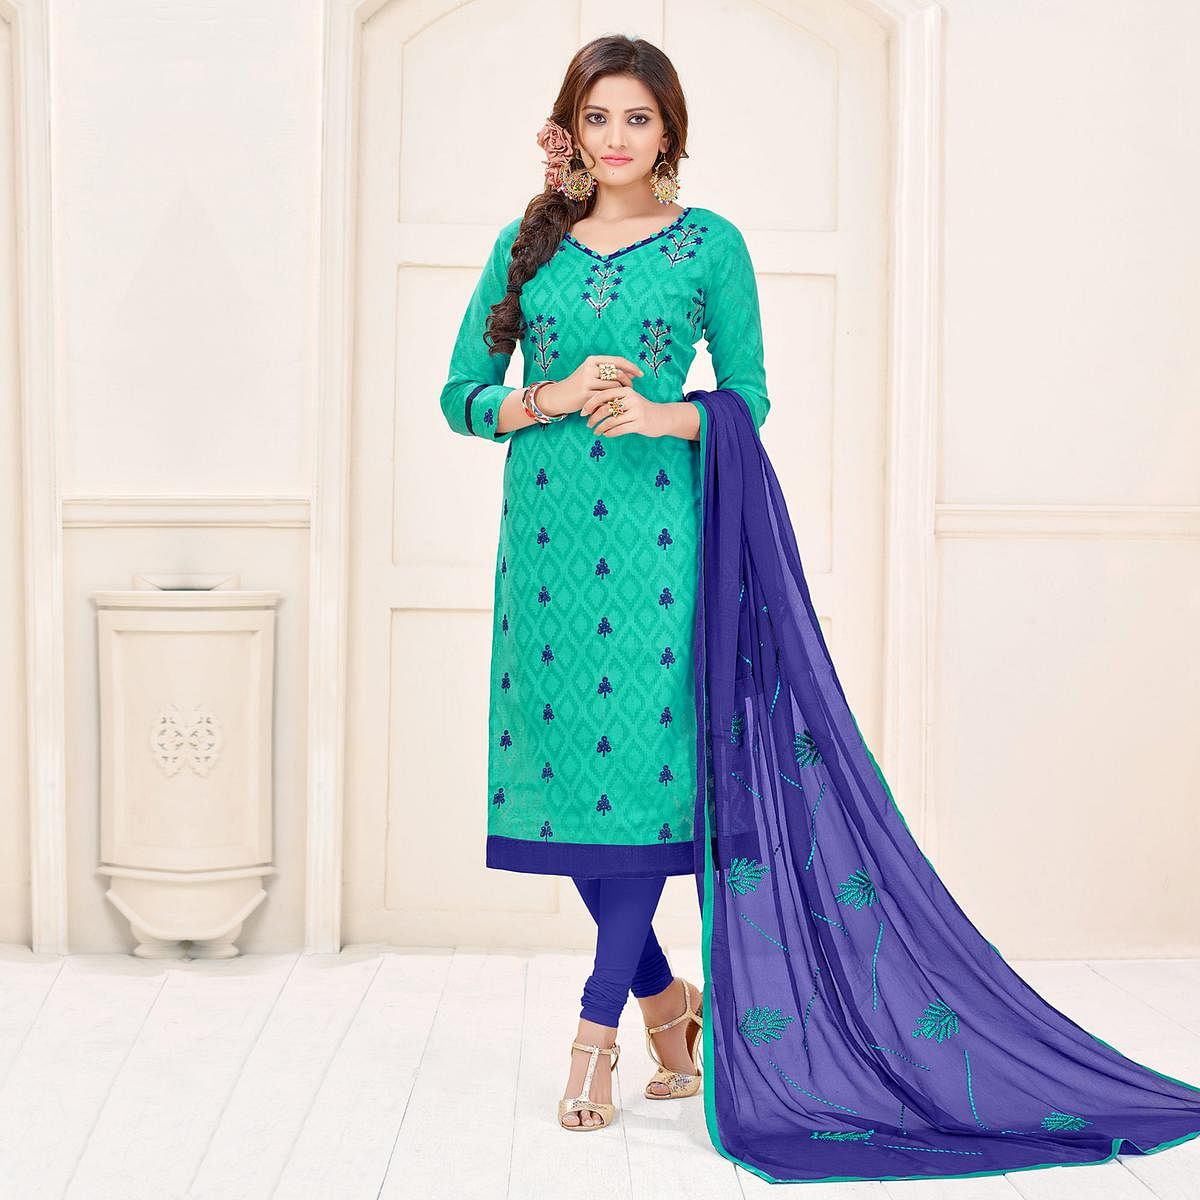 Classy Green Designer Embroidered Cotton Jacquard Salwar Suit